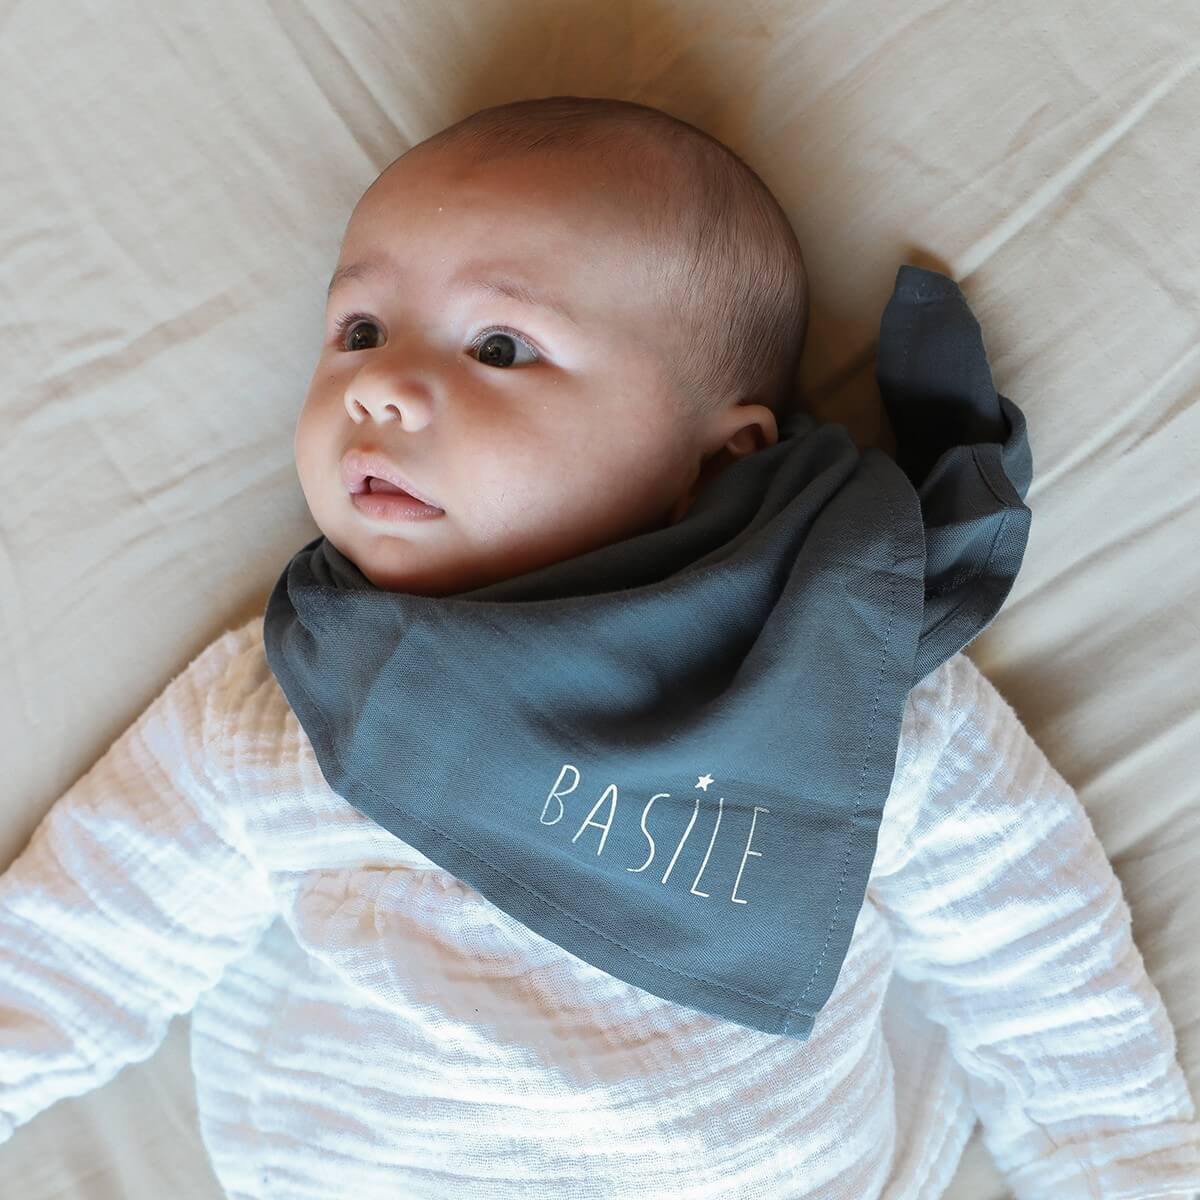 shop Baby's personalised cotton swaddle blanket 60x60